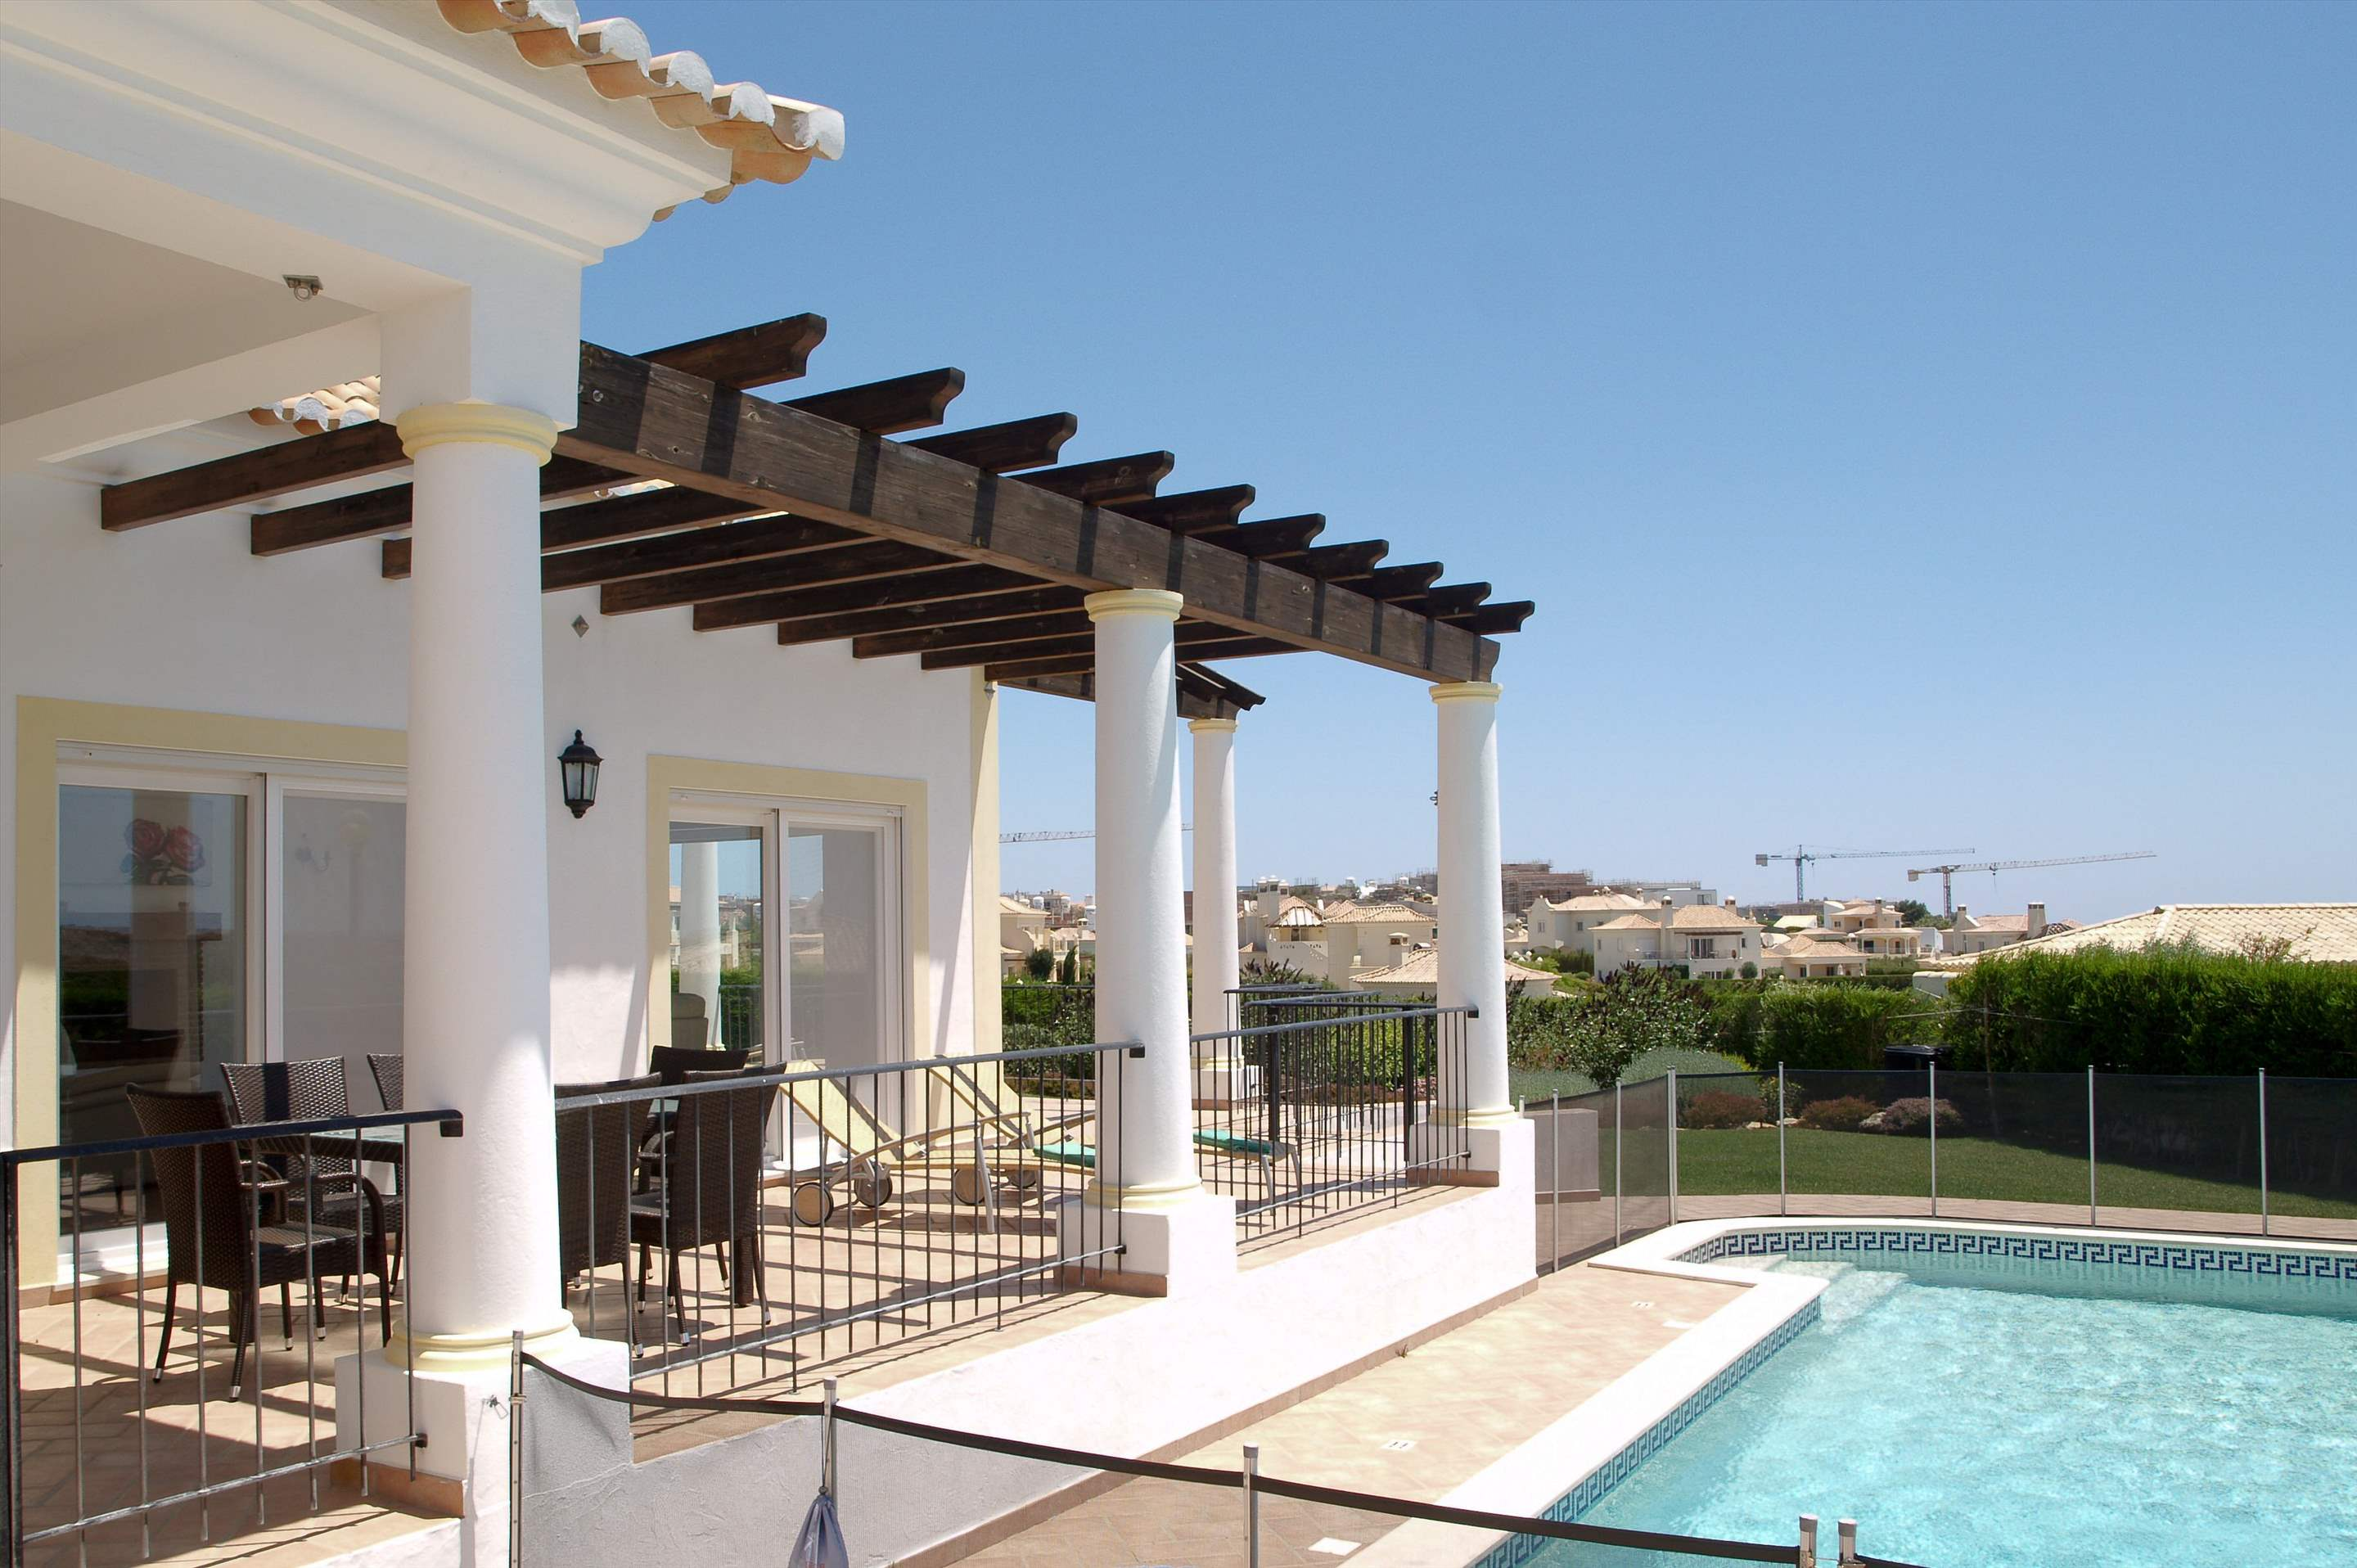 Martinhal Luxury Villa No.8, Three Bedroom Villa, 3 bedroom villa in Martinhal Sagres, Algarve Photo #2